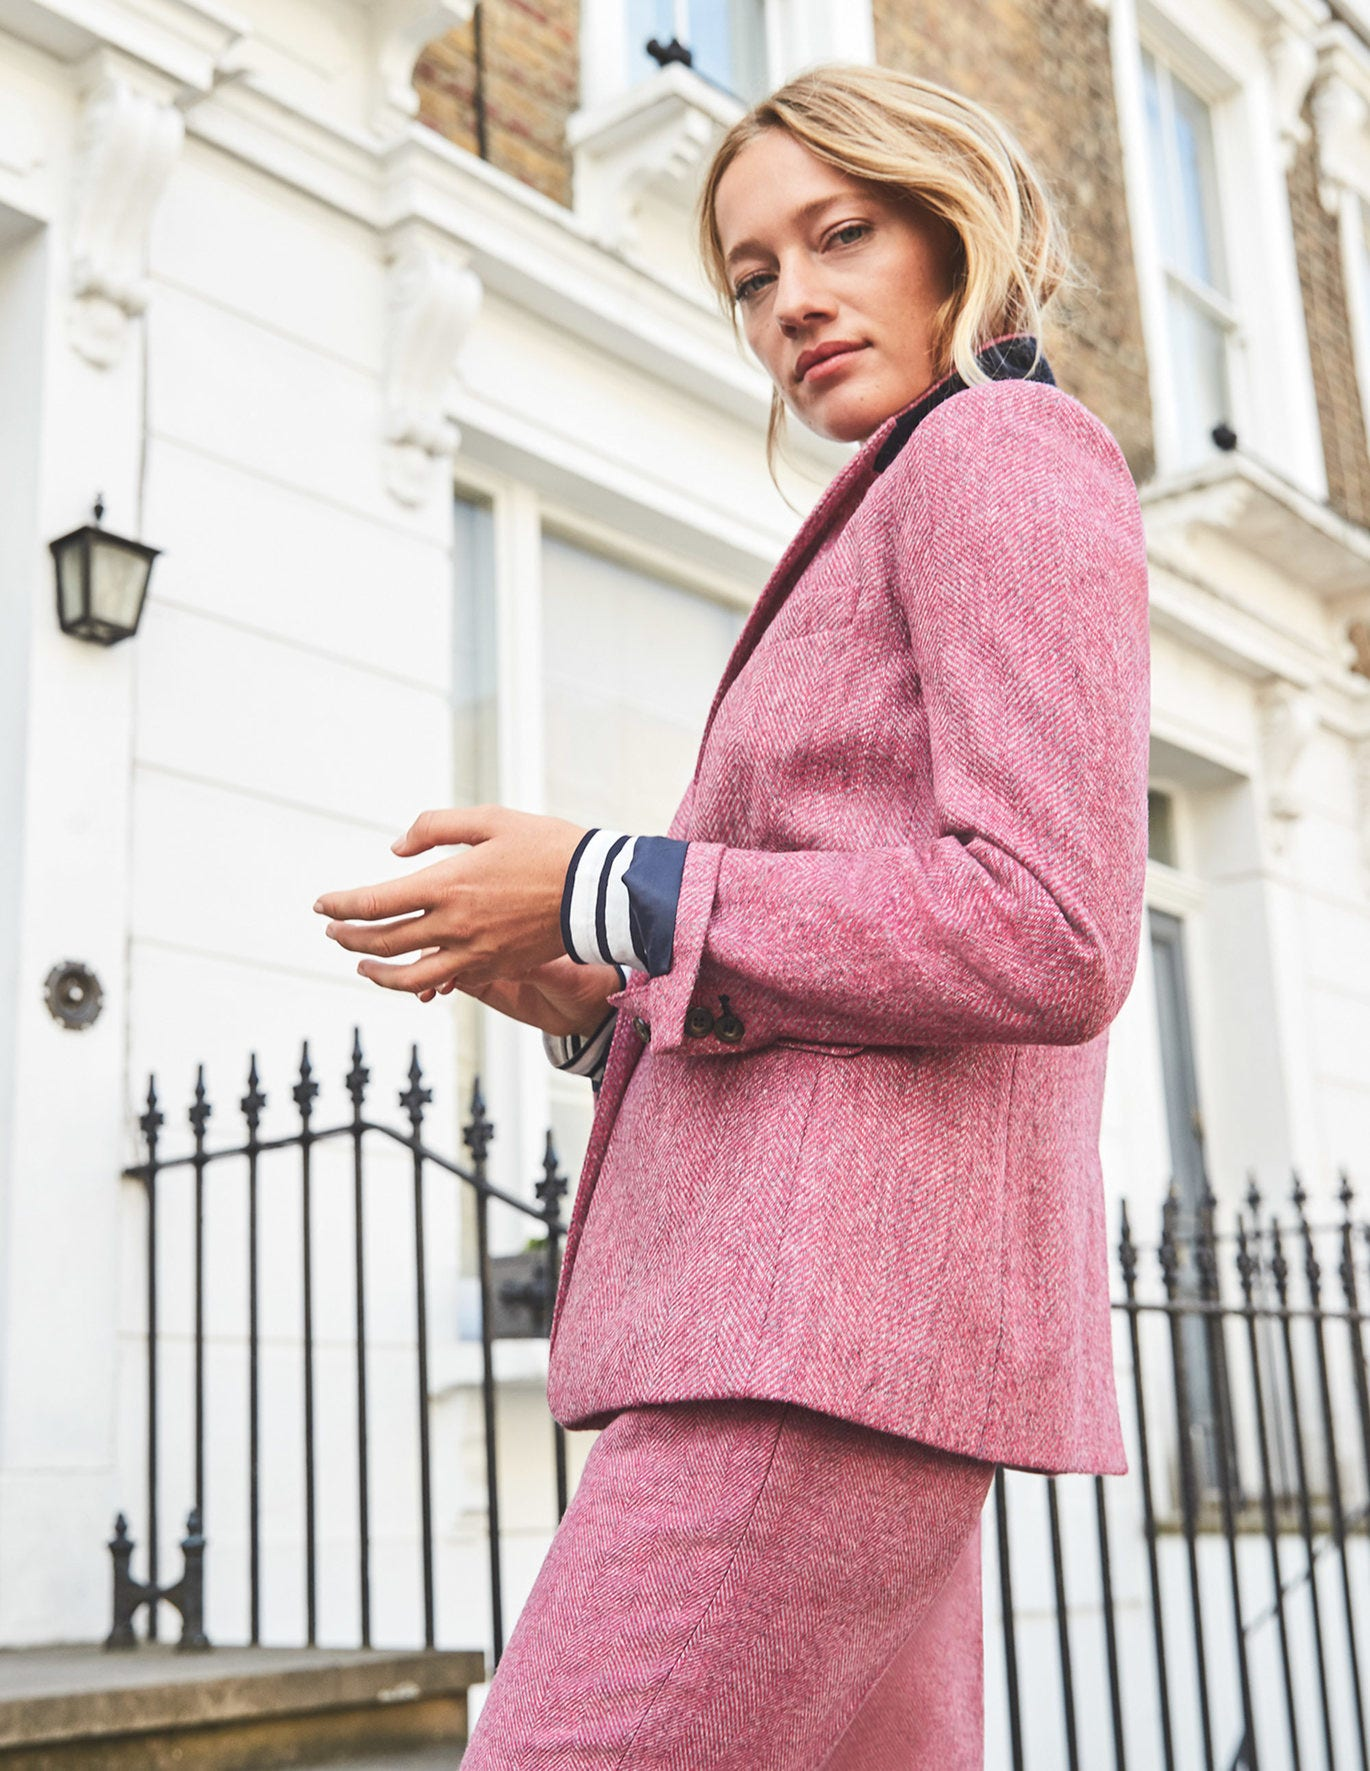 Bath British Tweed Blazer - Pink Herringbone T0176-LPK